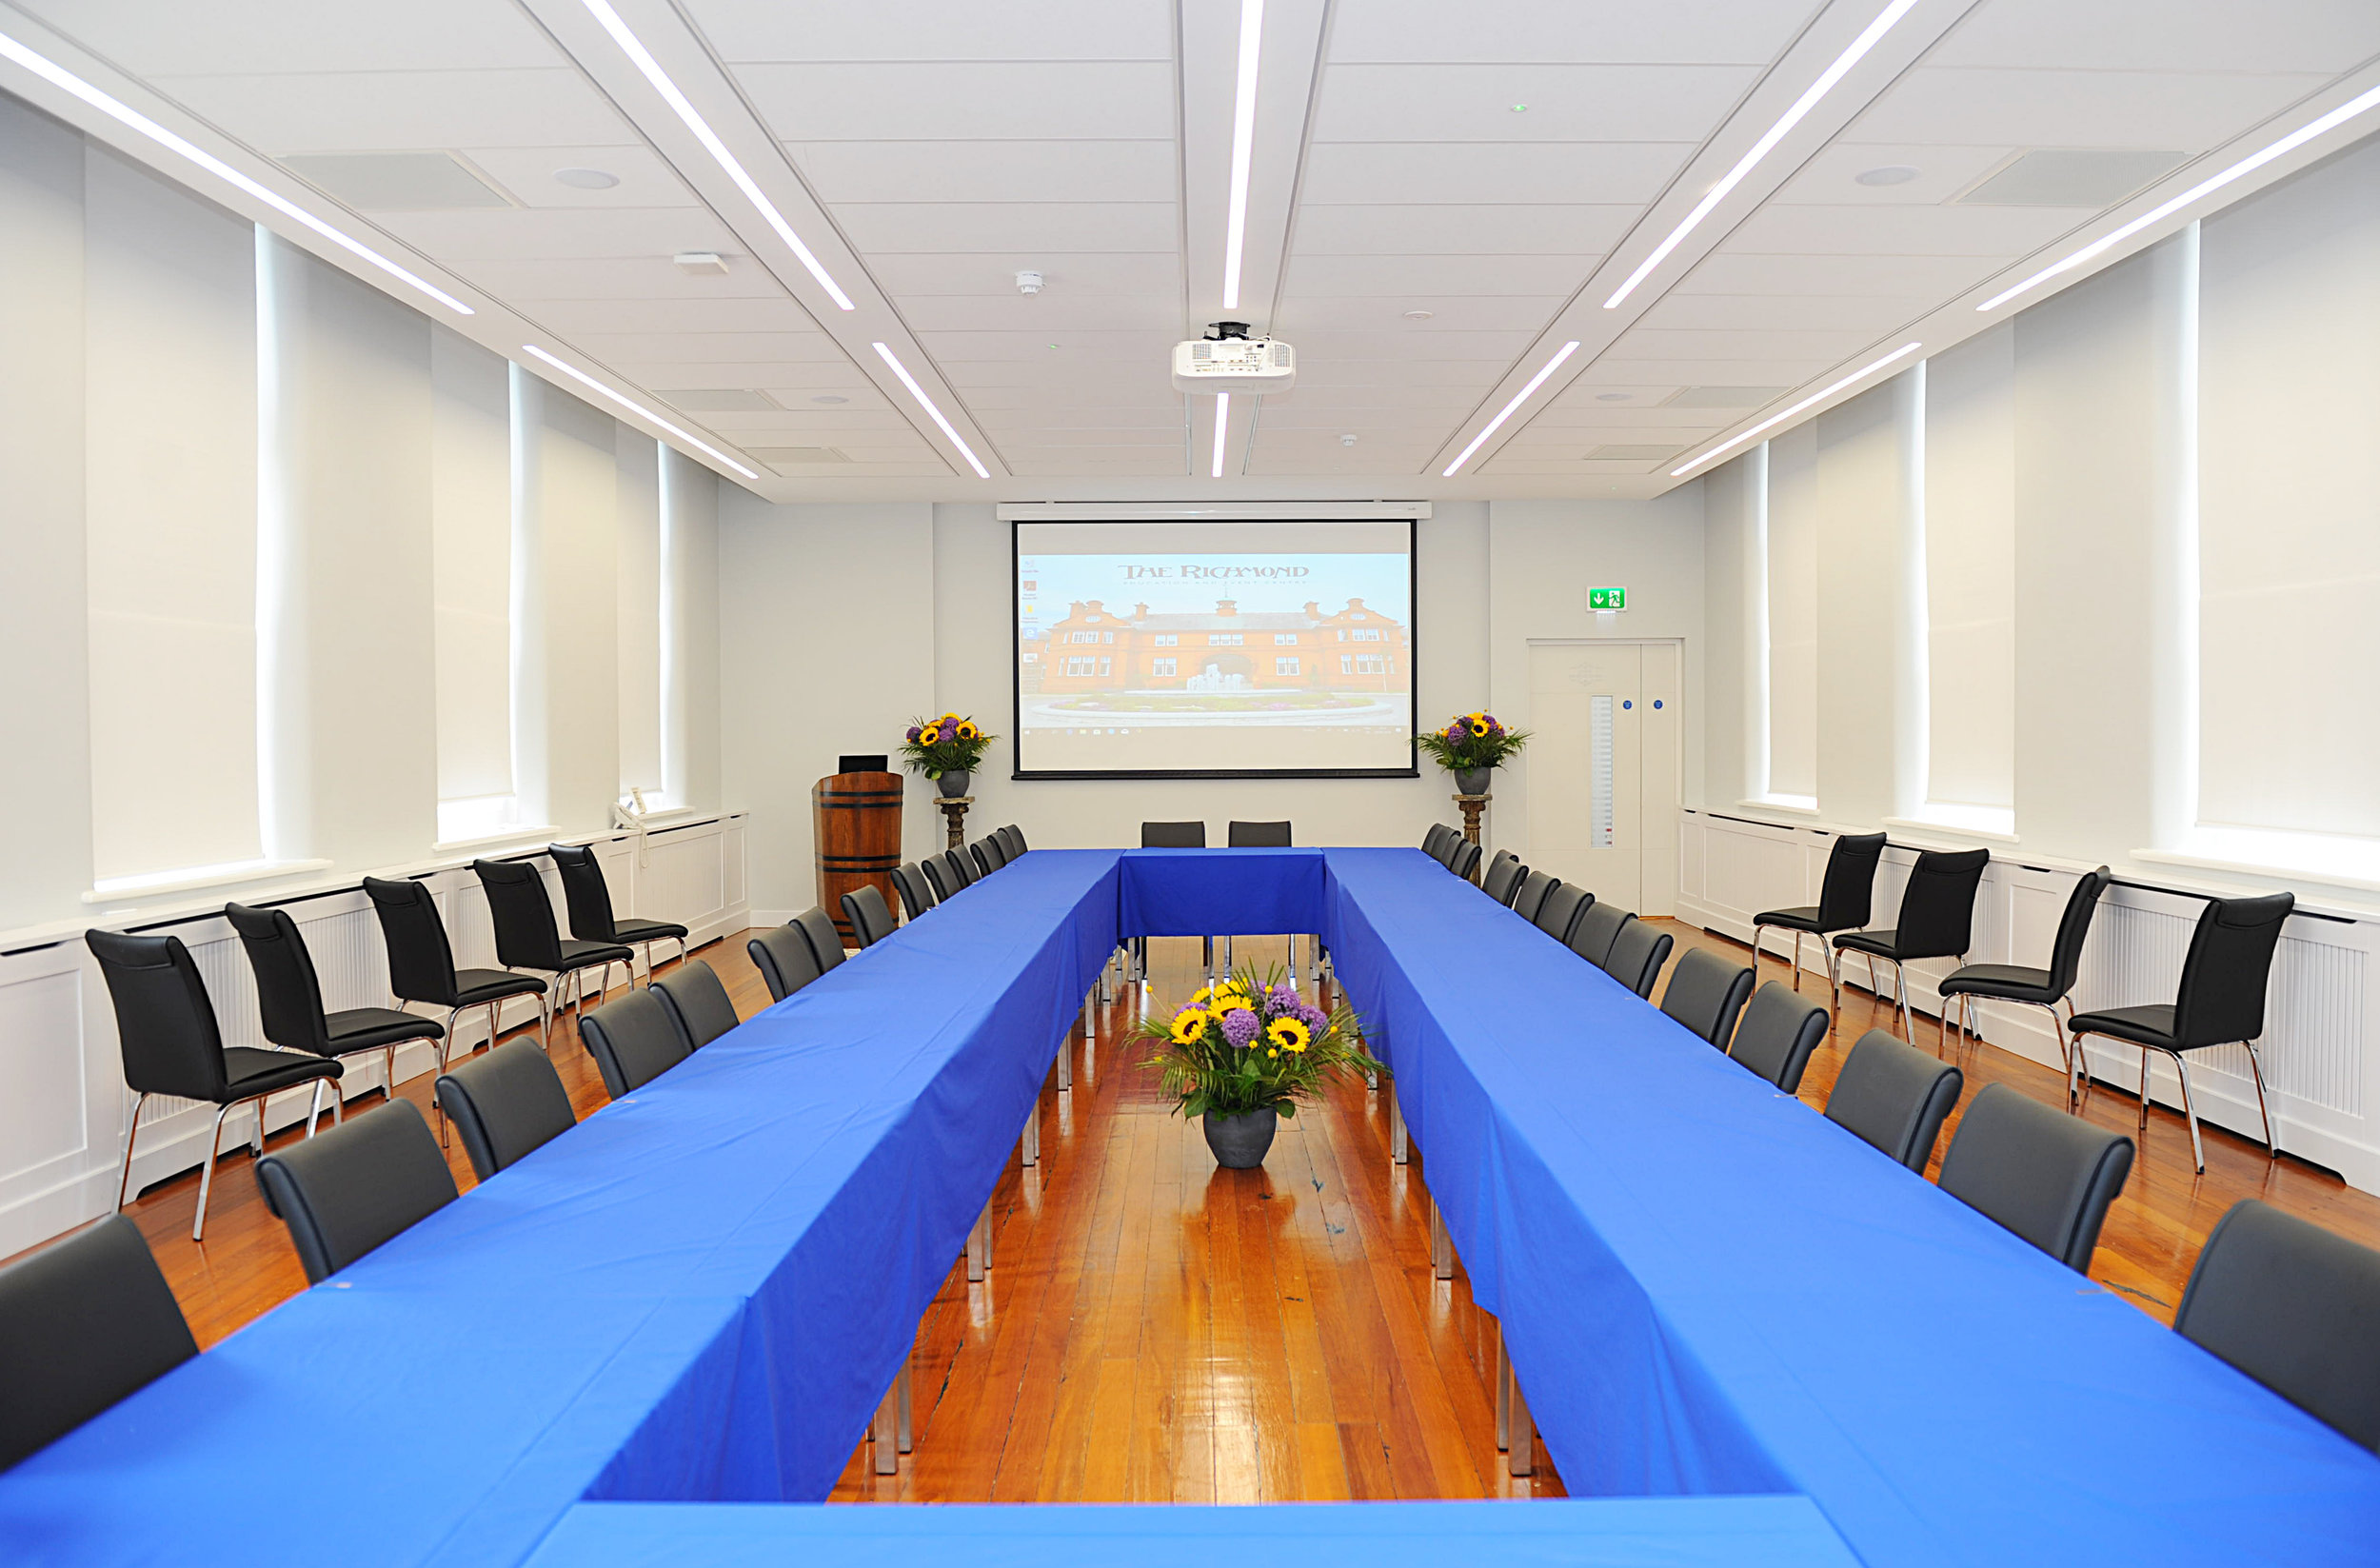 Lecture Room - The Lecture room is a large and elegant space filled with natural light. It has the space and flexibility to be adapted to many layouts. It includes a HD projector and screen and dimmable lighting. A popular choice for boardroom style meetings and for education sessions and seminars.